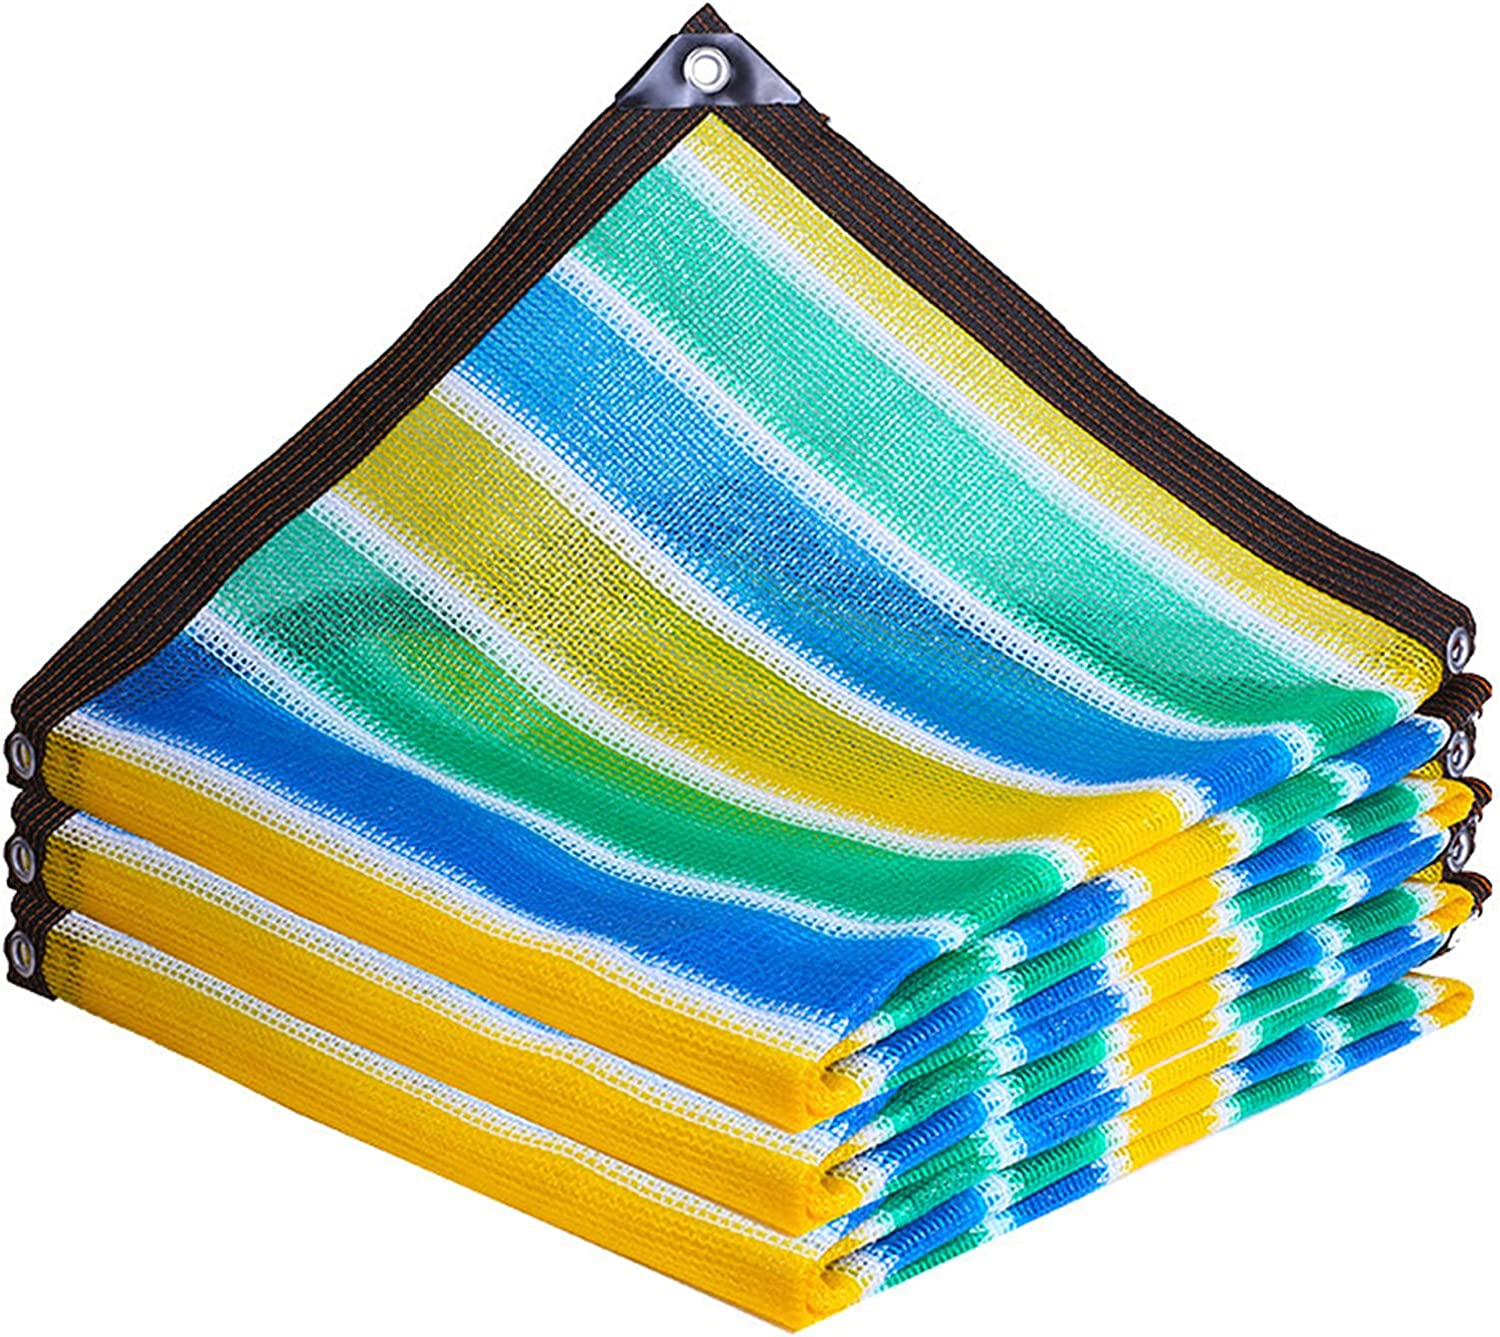 QIAOH 70% Fresno Mall Sunblock Shade Cloth with 7x7ft Limited time for free shipping Blo Sun Grommets Mesh